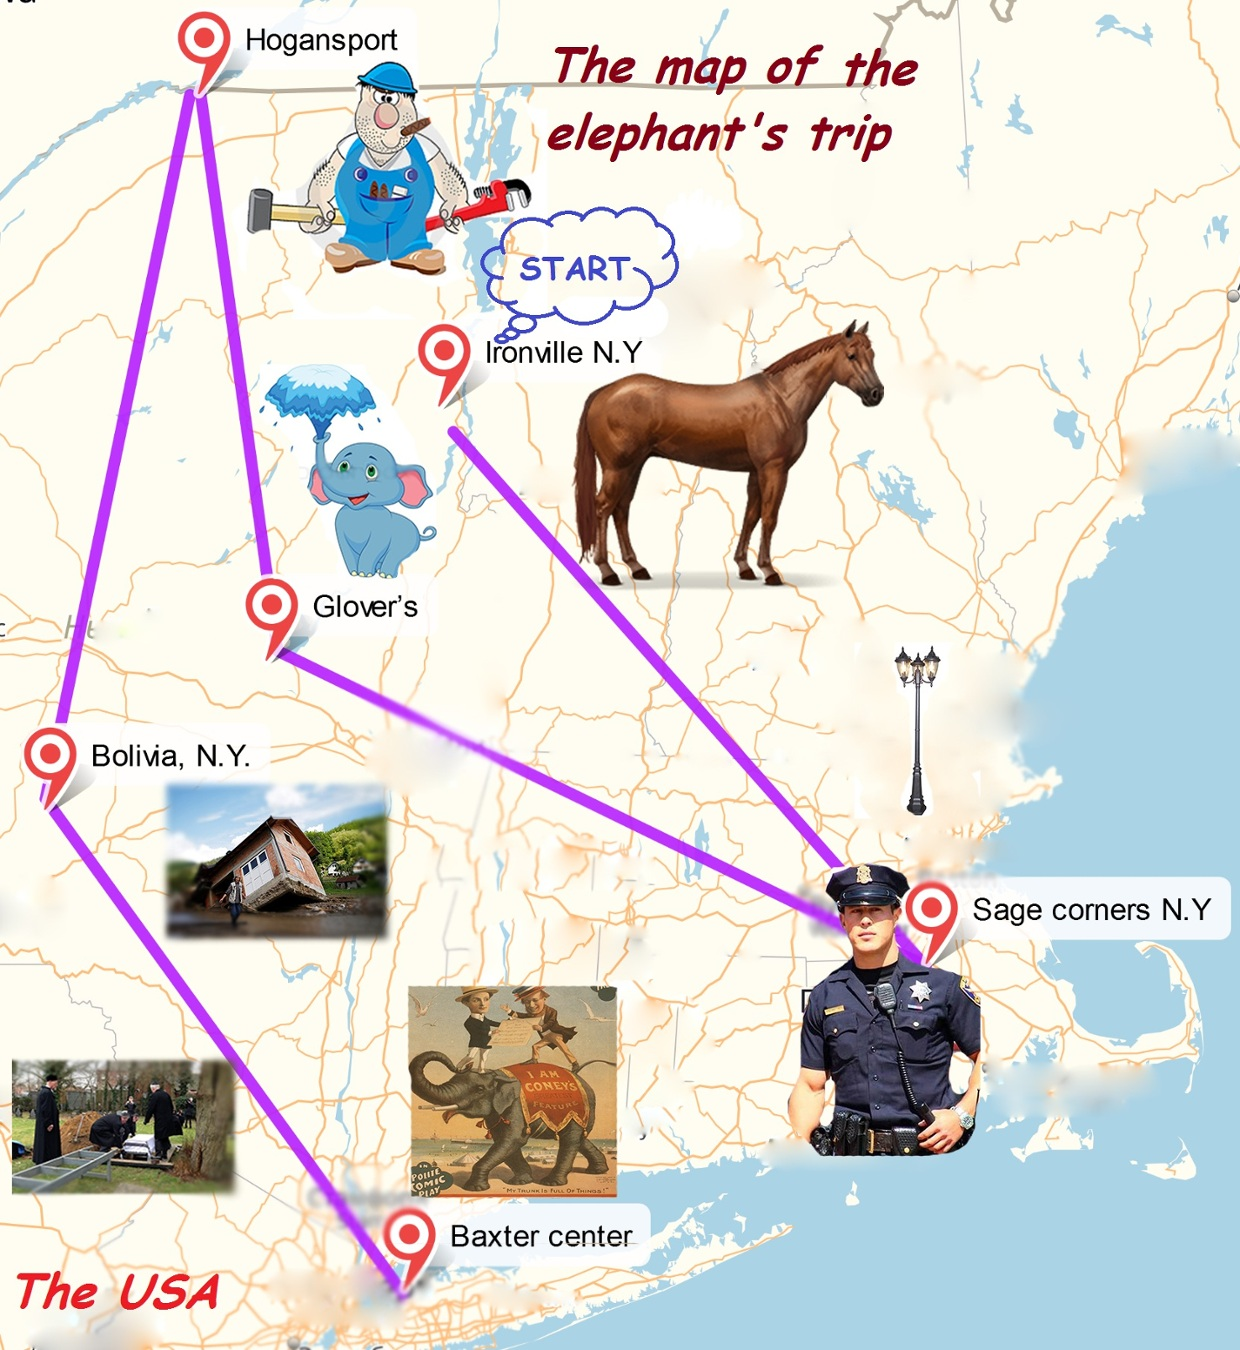 The map of the elephant's trip